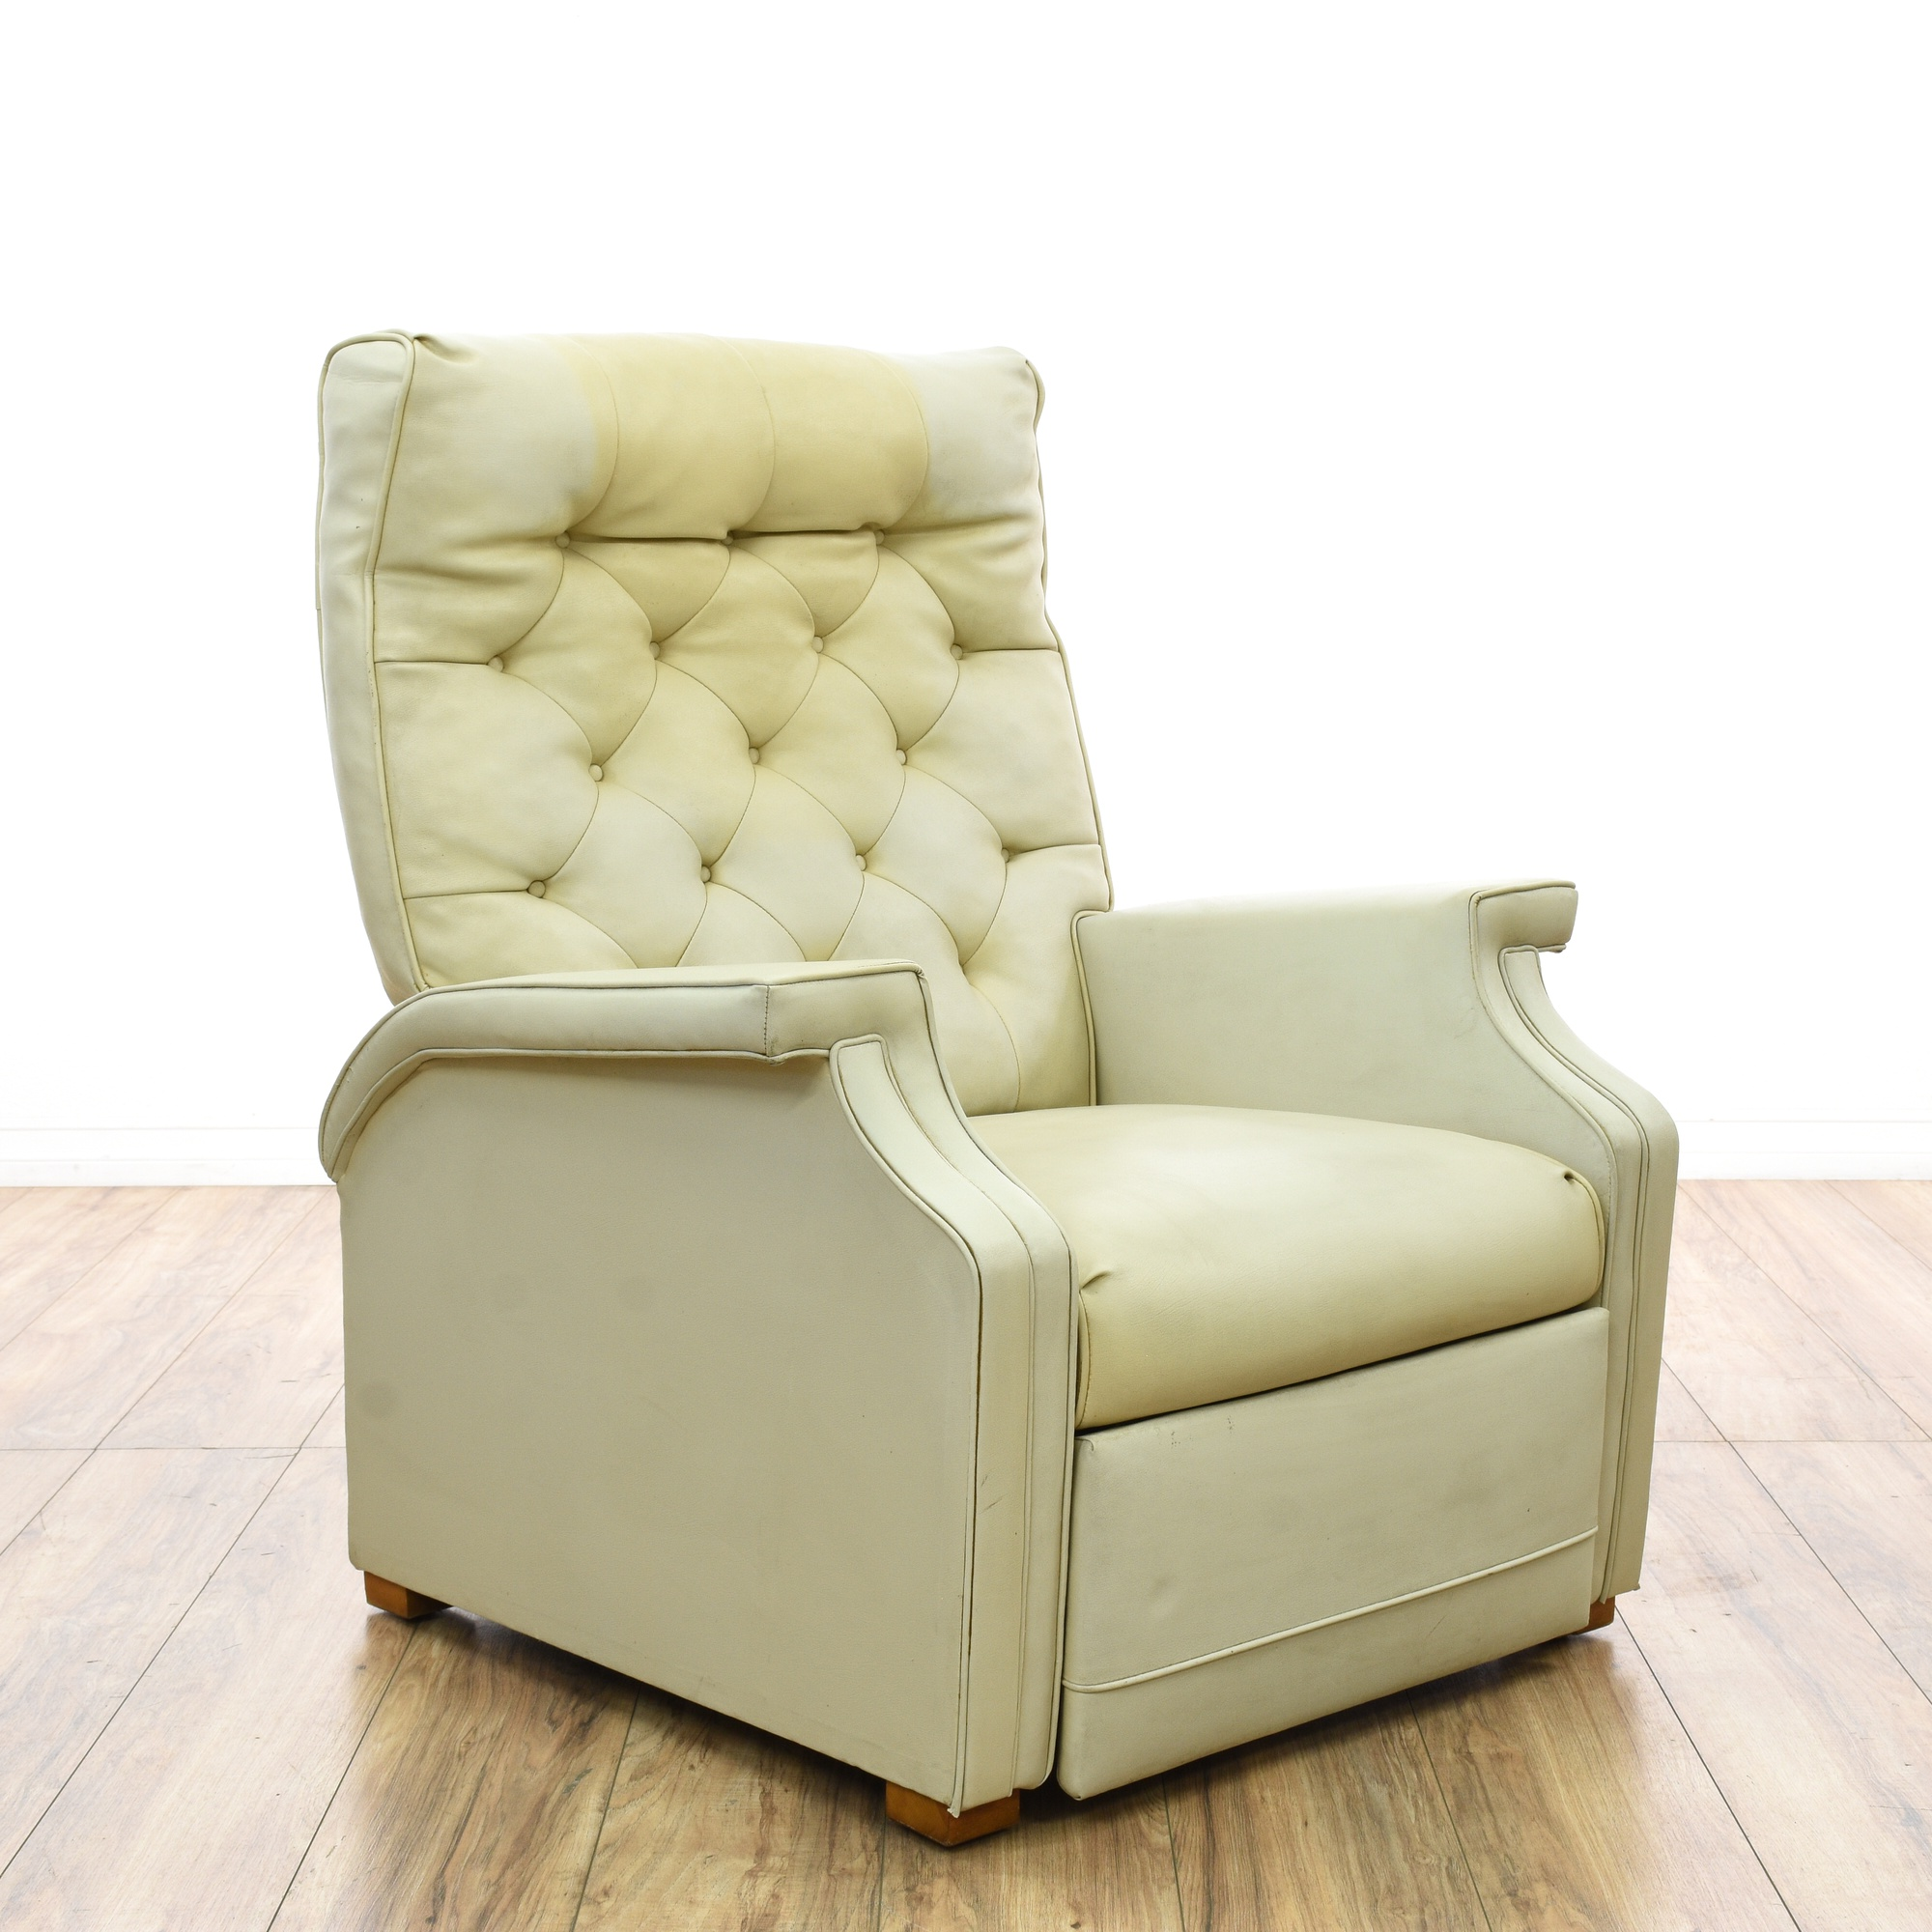 Quot Stratolounger Quot Mid Century Modern Tufted Recliner